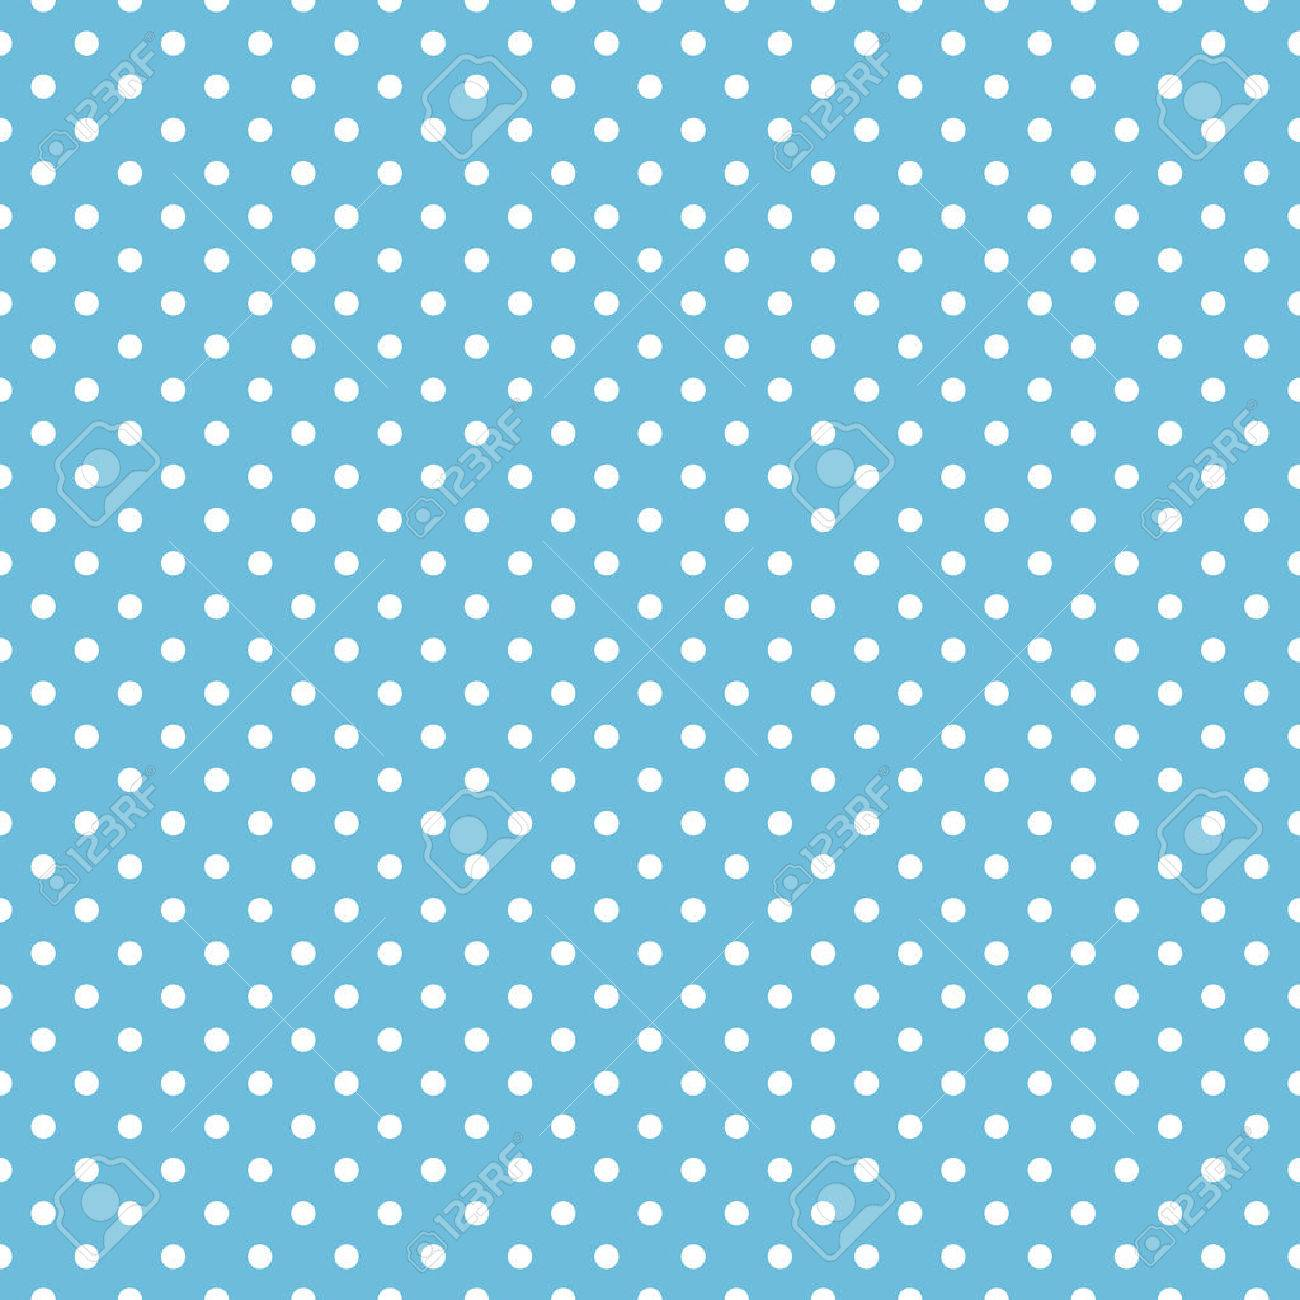 Seamless Blue Polka Dot Background Pattern Royalty Free Cliparts